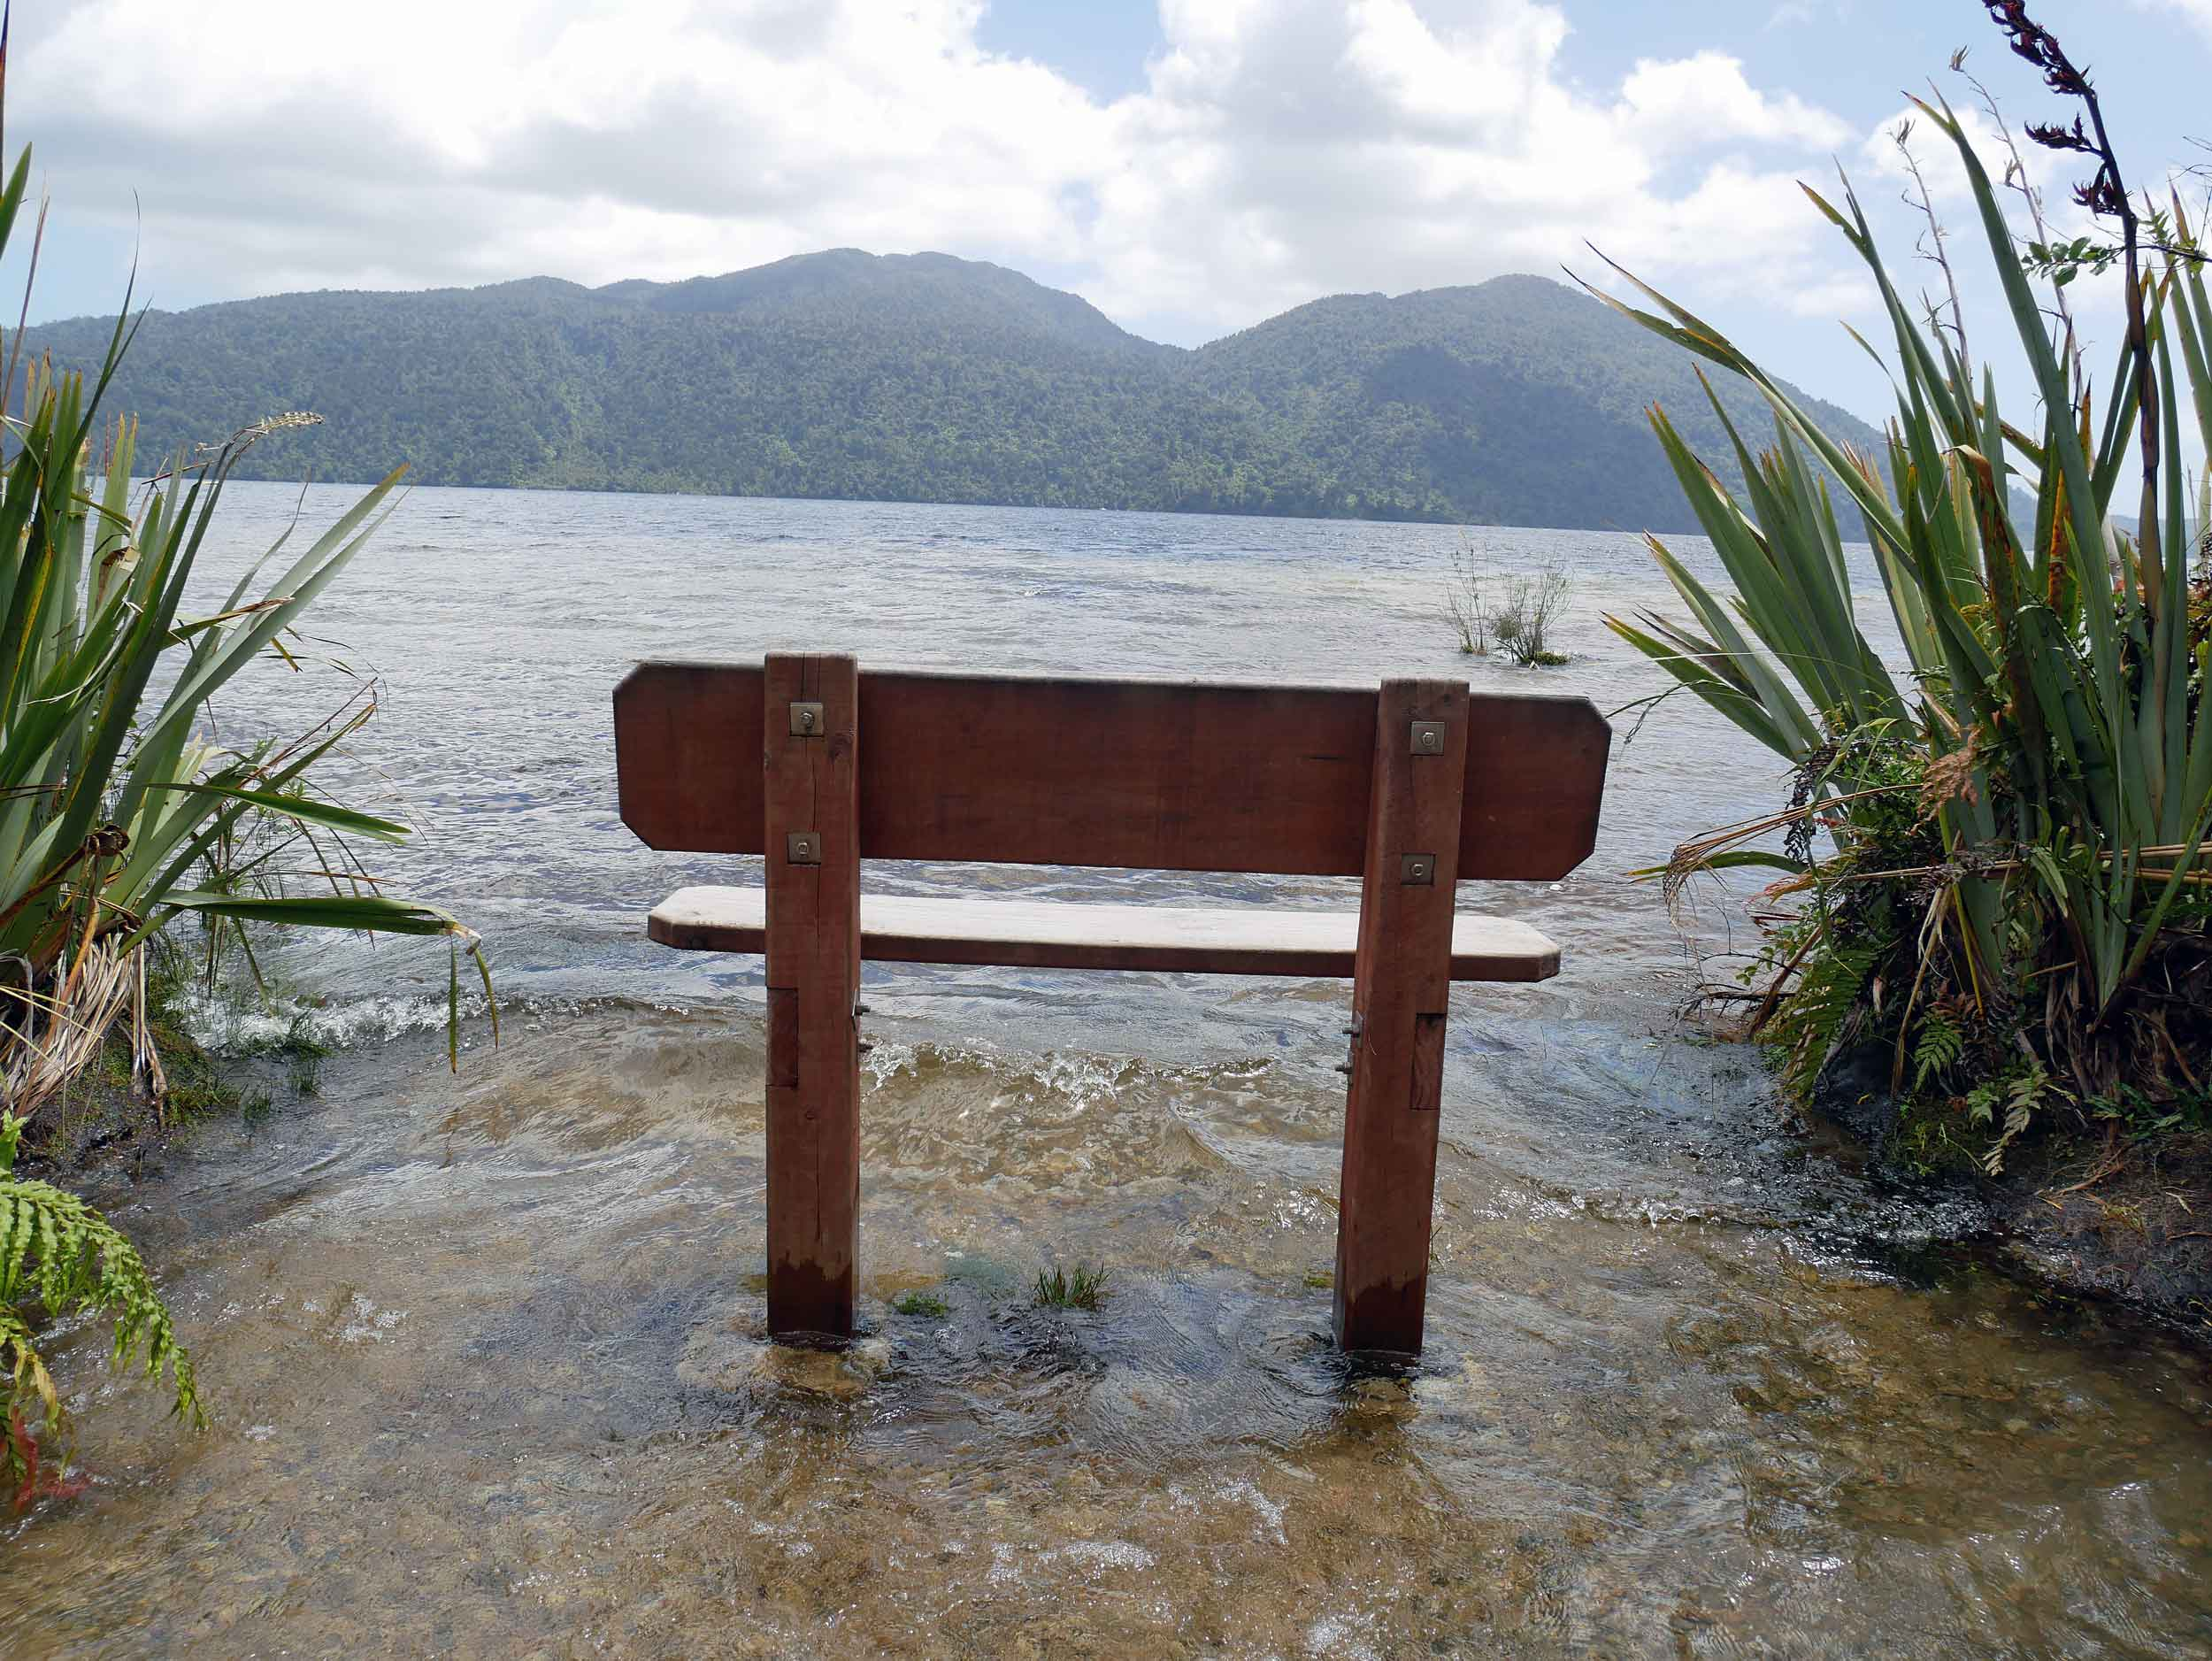 High tide at Lake Kaniere near Dorothy Falls and Hokitika, which was our first stop on the West Coast after braving Arthur's Pass (Jan 5).